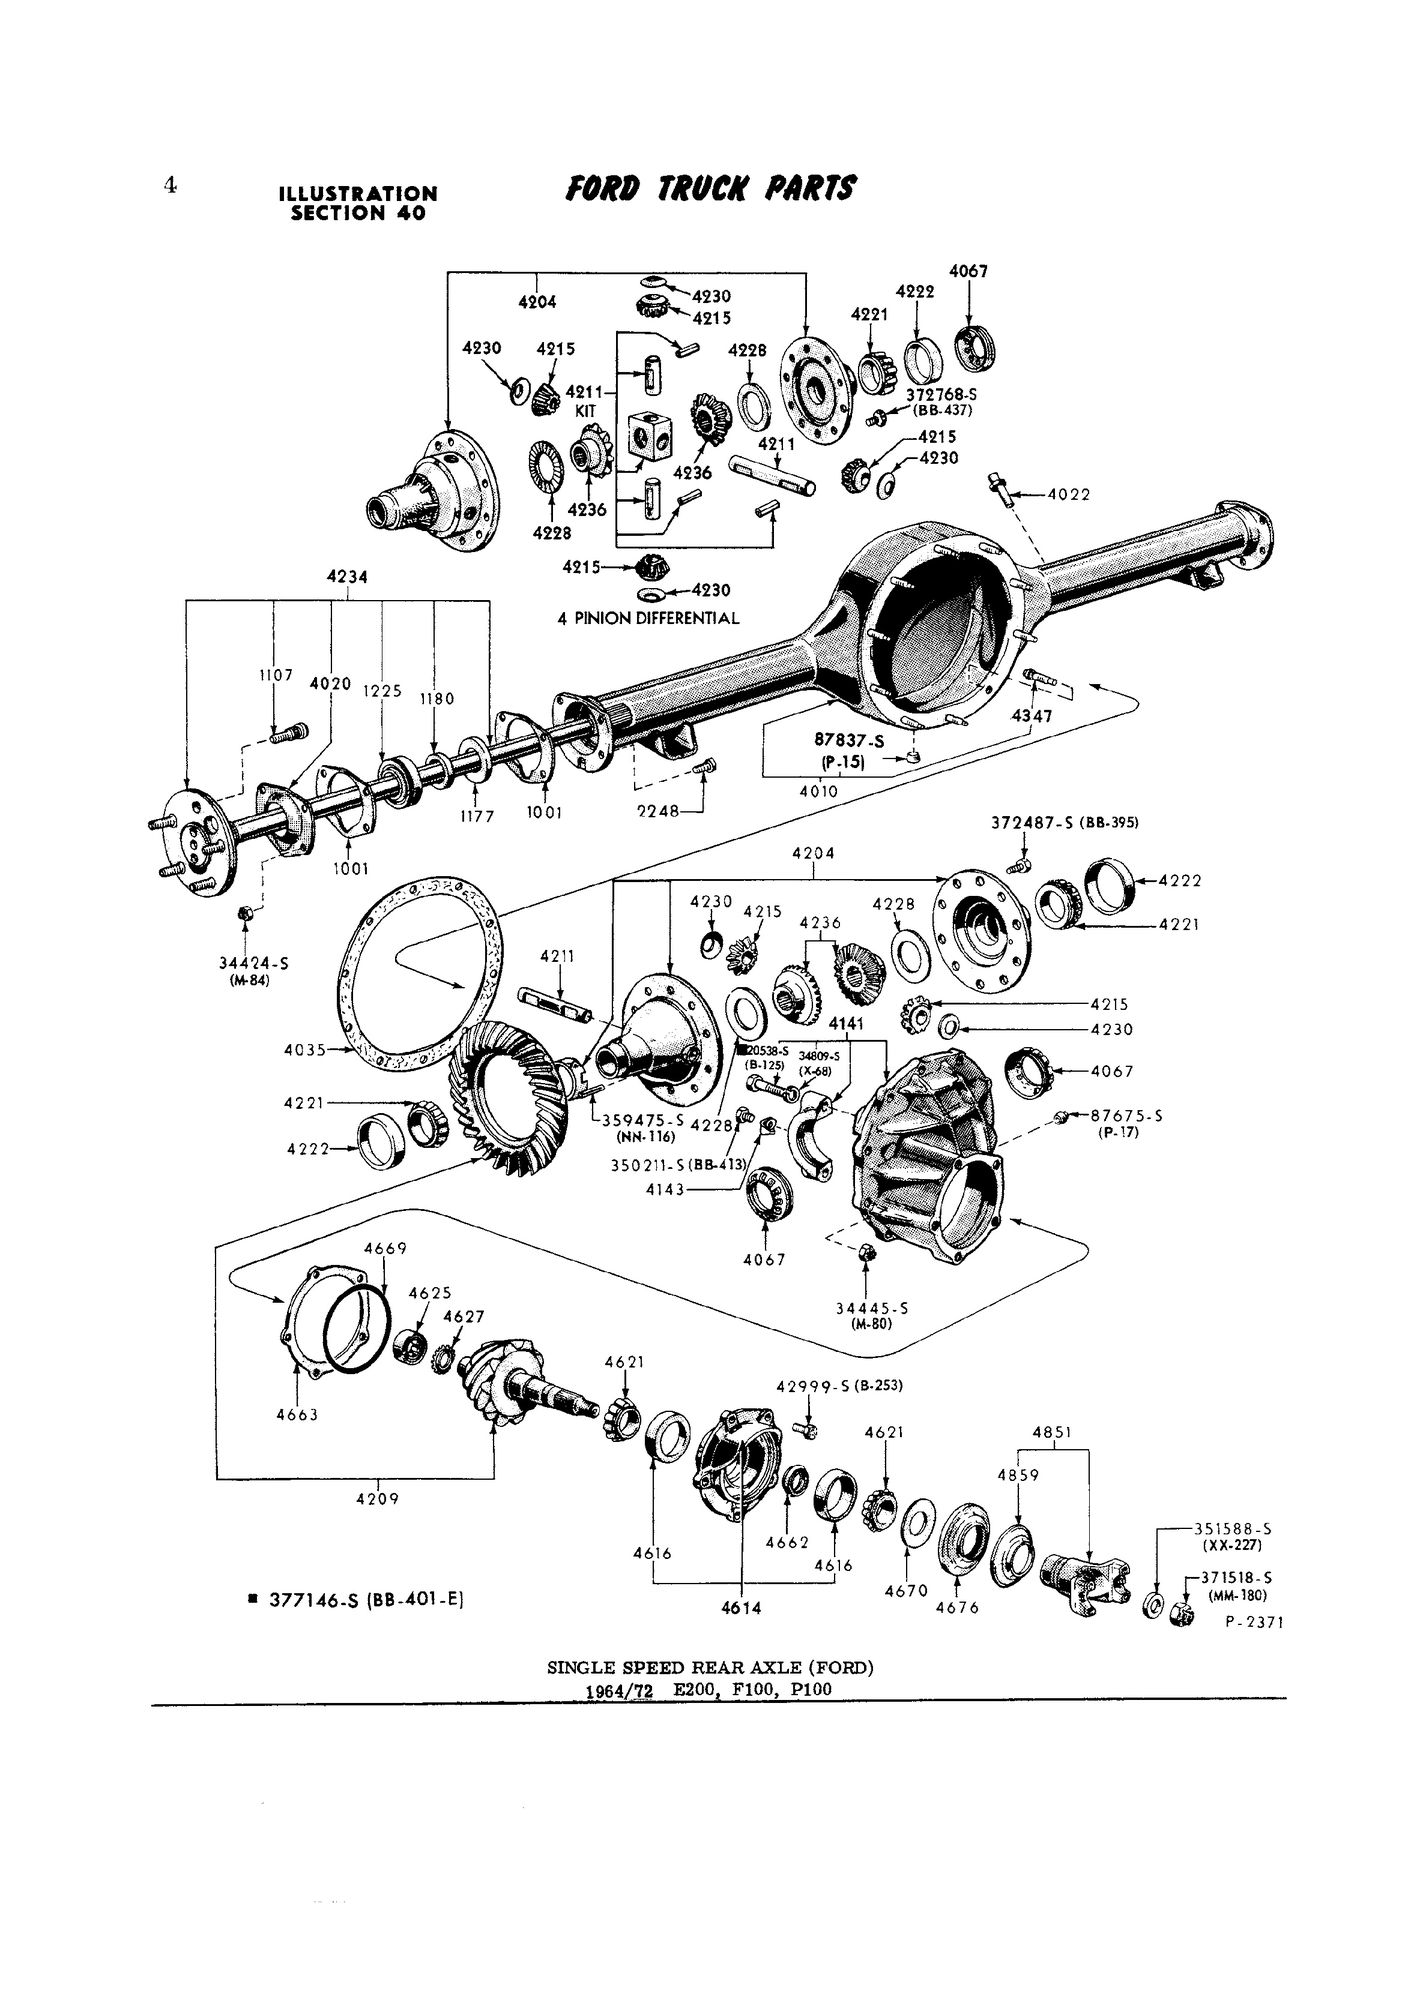 Ford 9 Inch Part Number Confusion